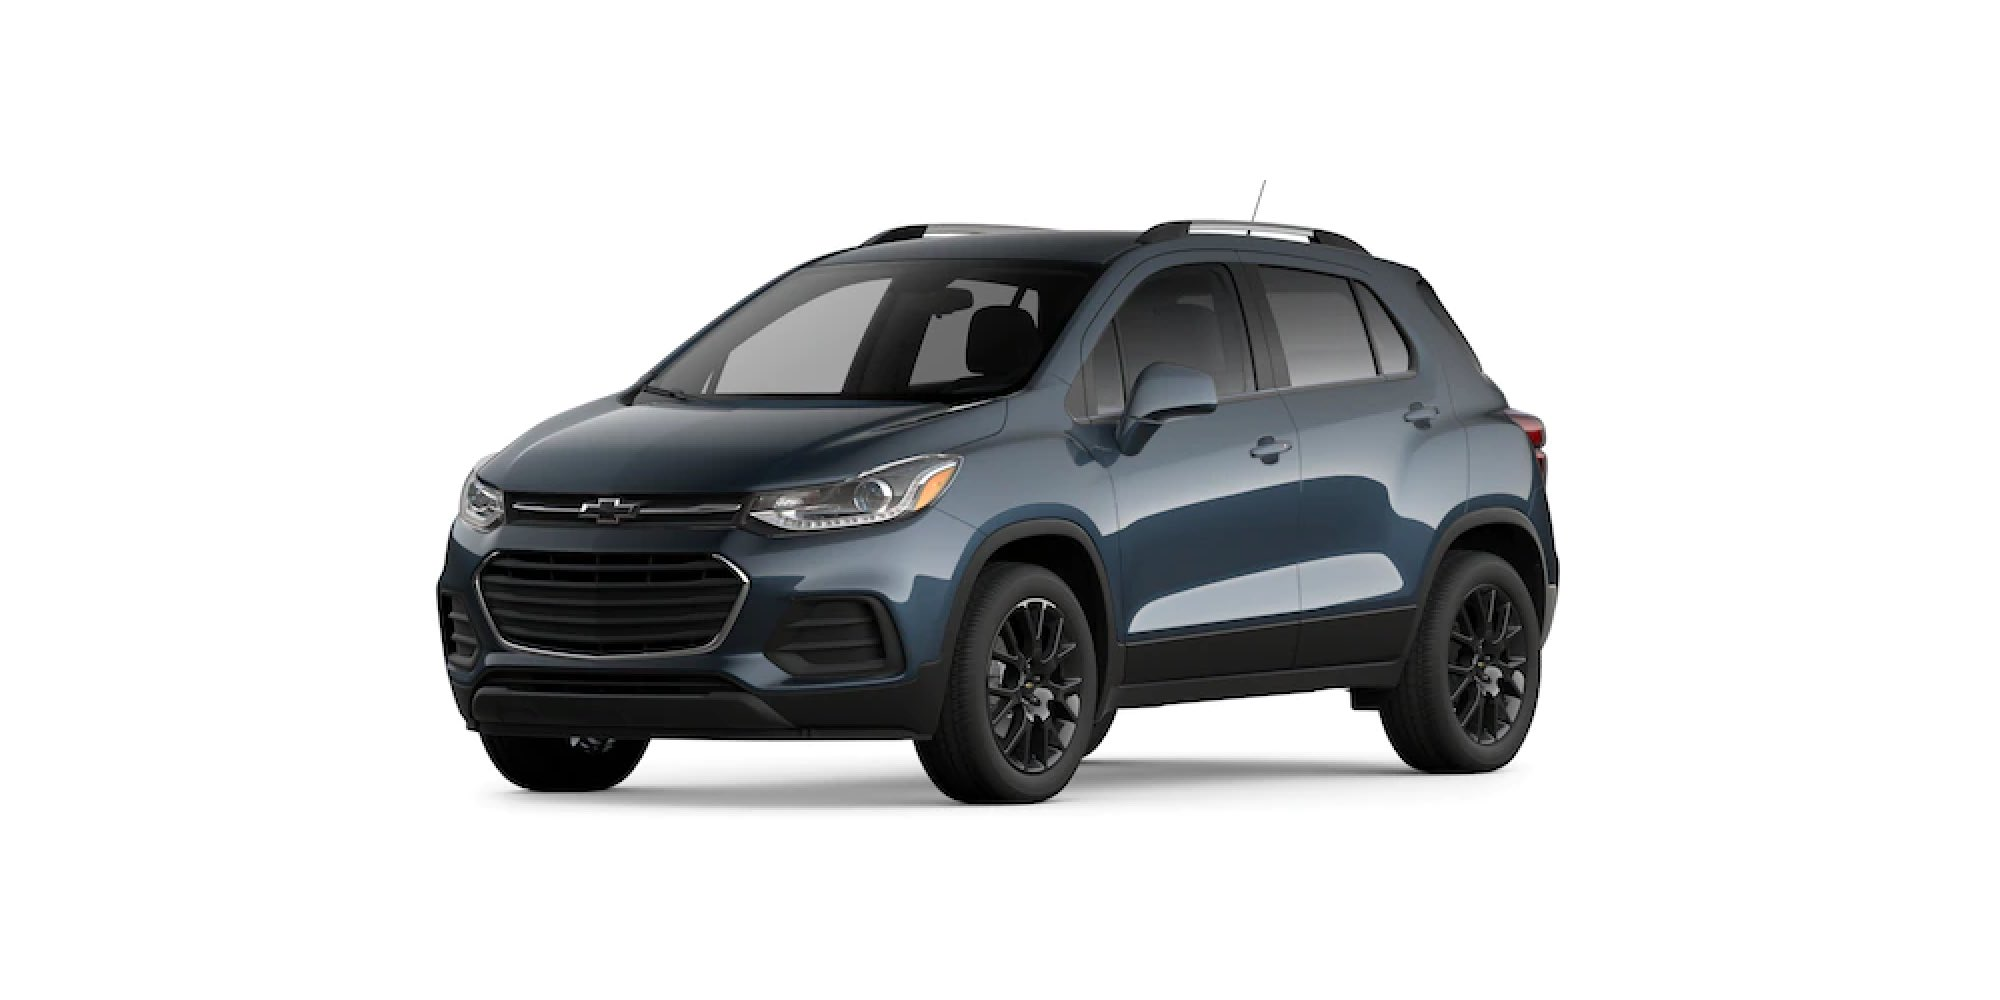 2021 Chevy Trax in SHADOW GRAY METALLIC